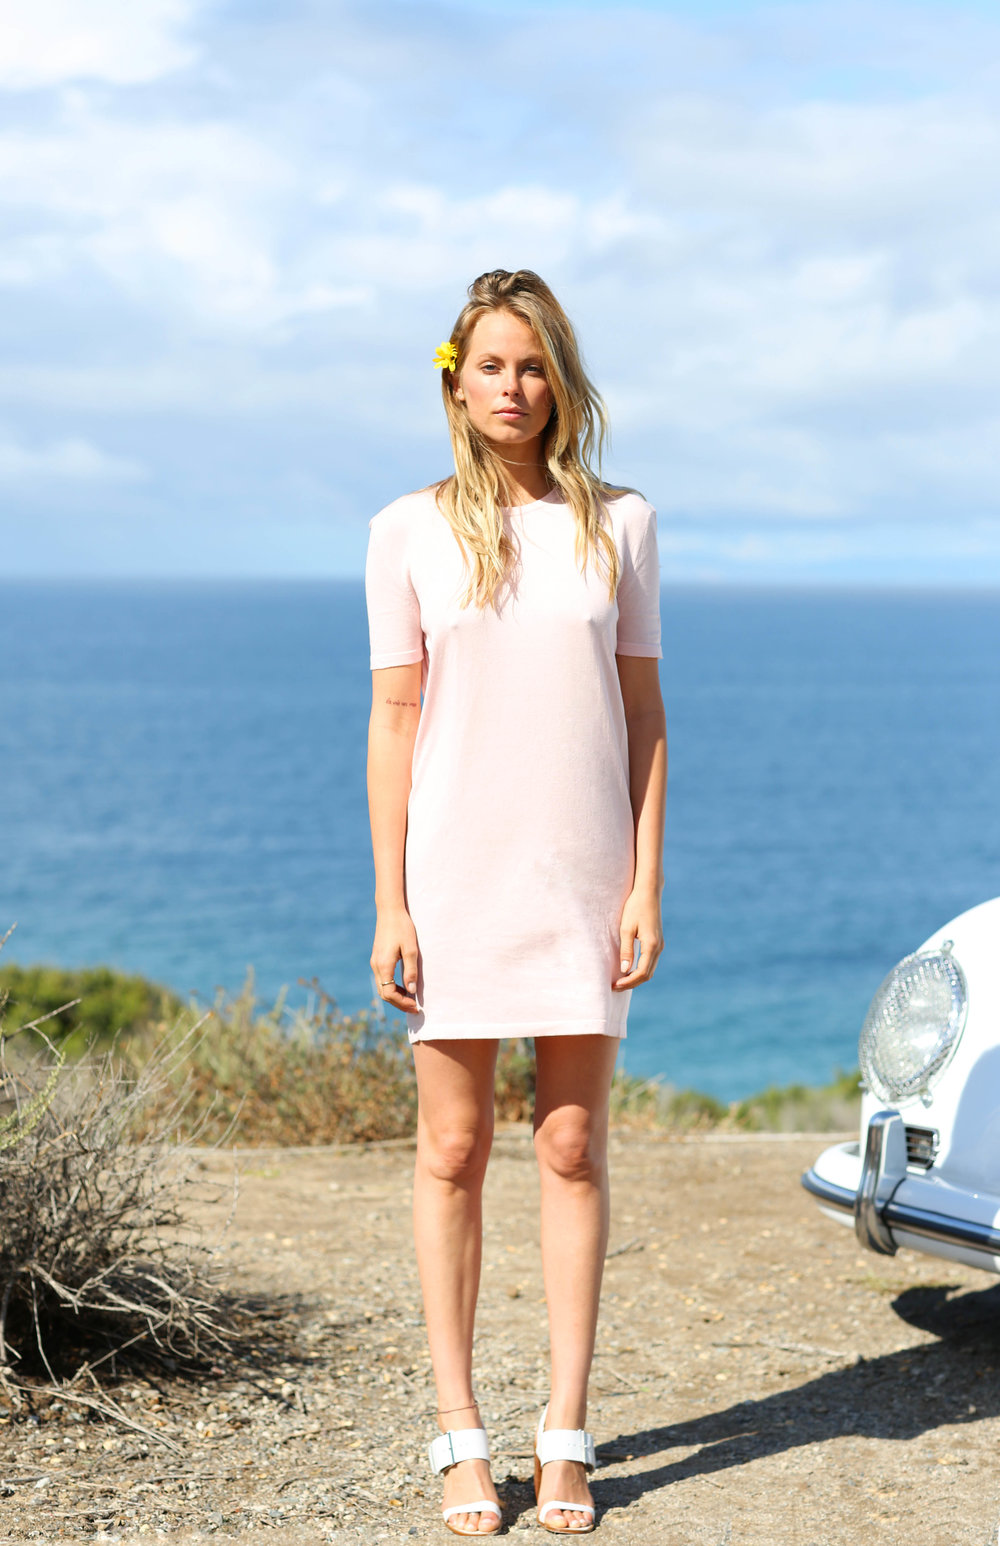 Lauren Mini Dress in Pale Pink